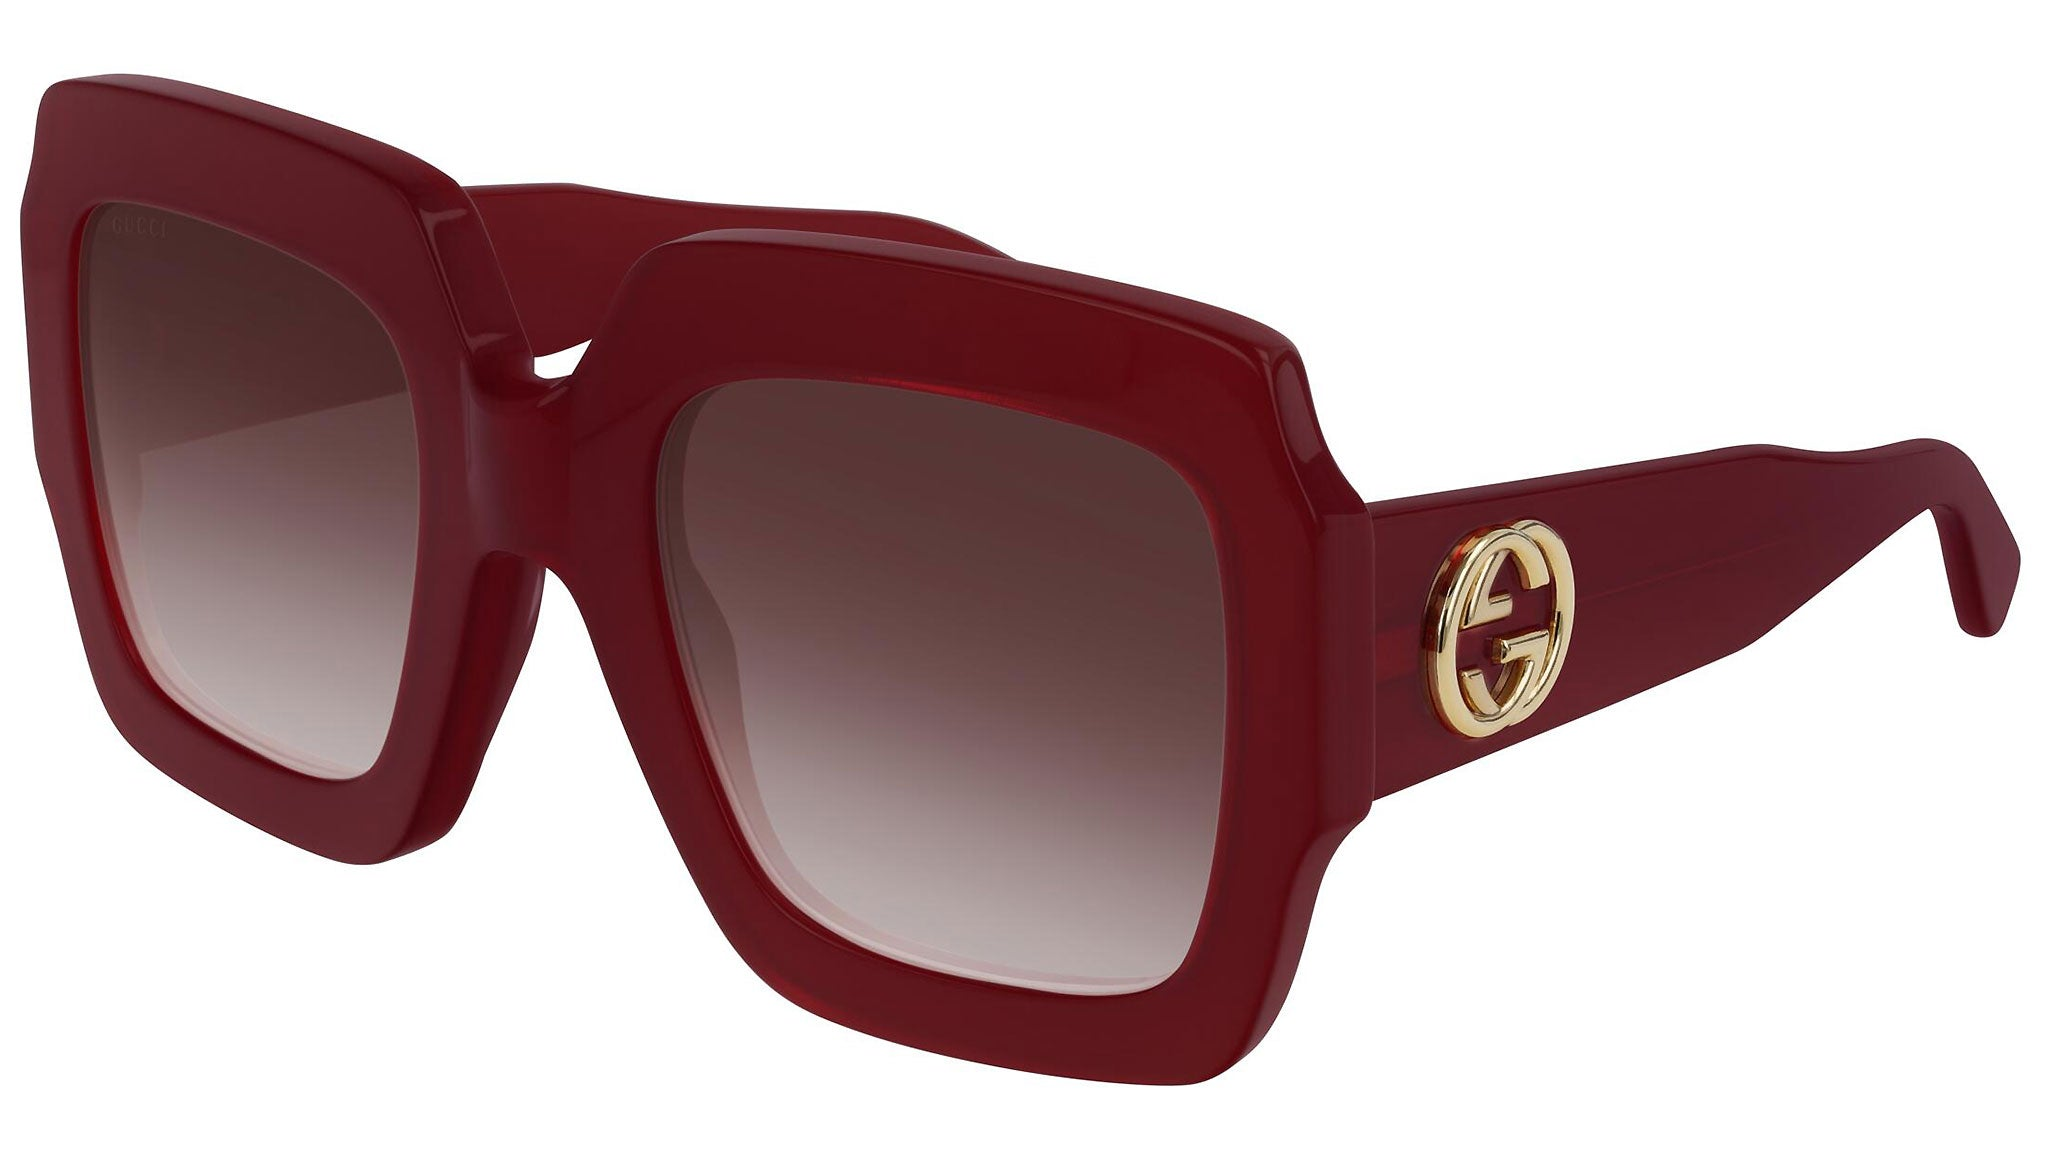 GG0178S shiny red and burgundy